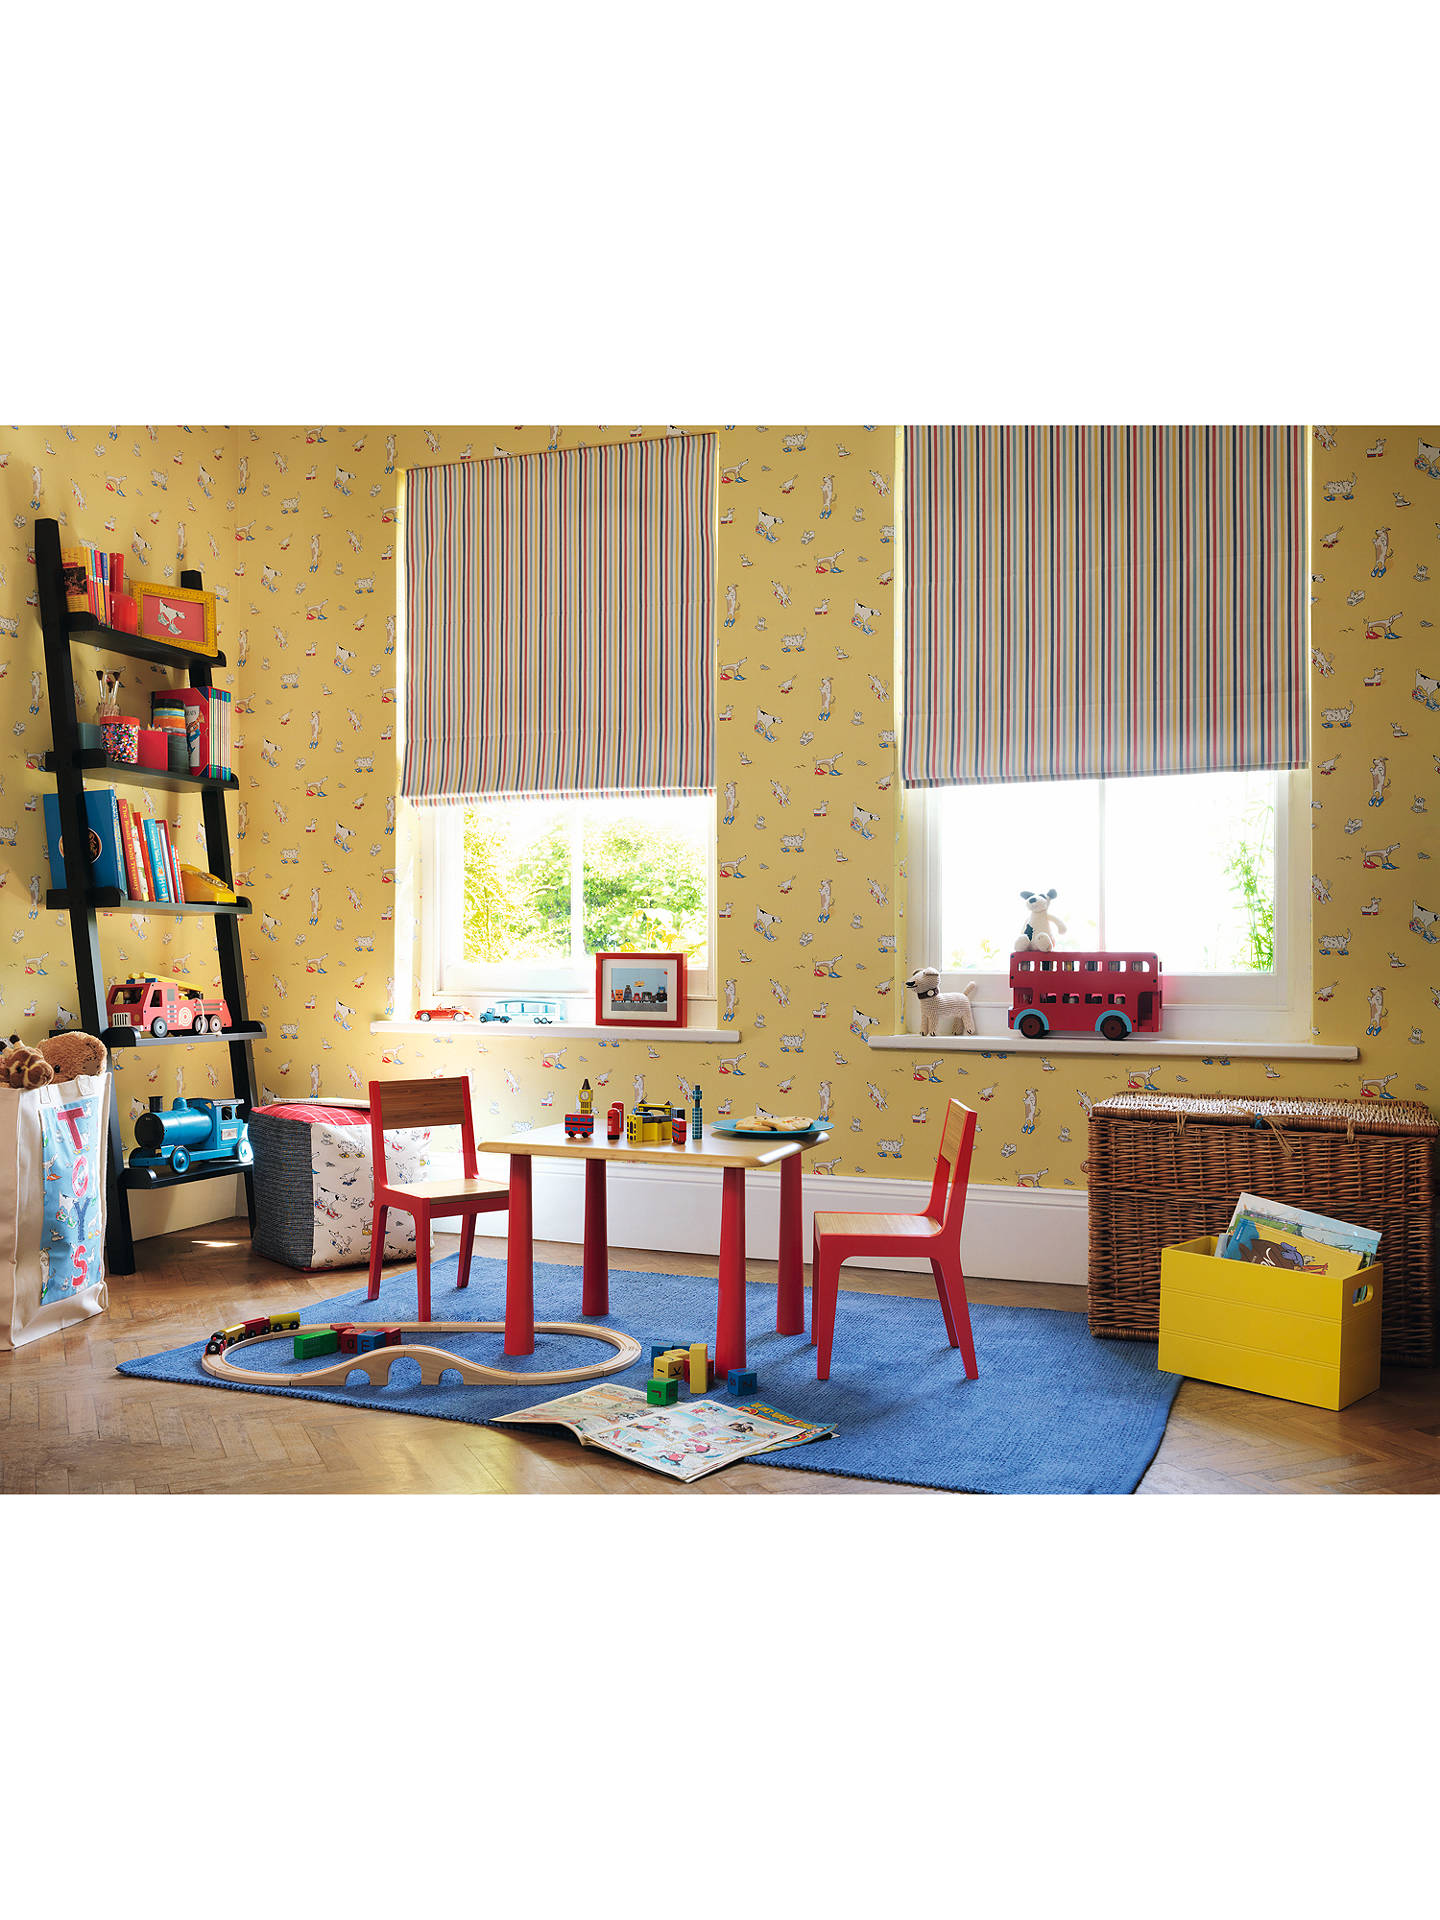 BuySanderson Dogs in Clogs Wallpaper, Yellow, DLIT214012 Online at johnlewis.com